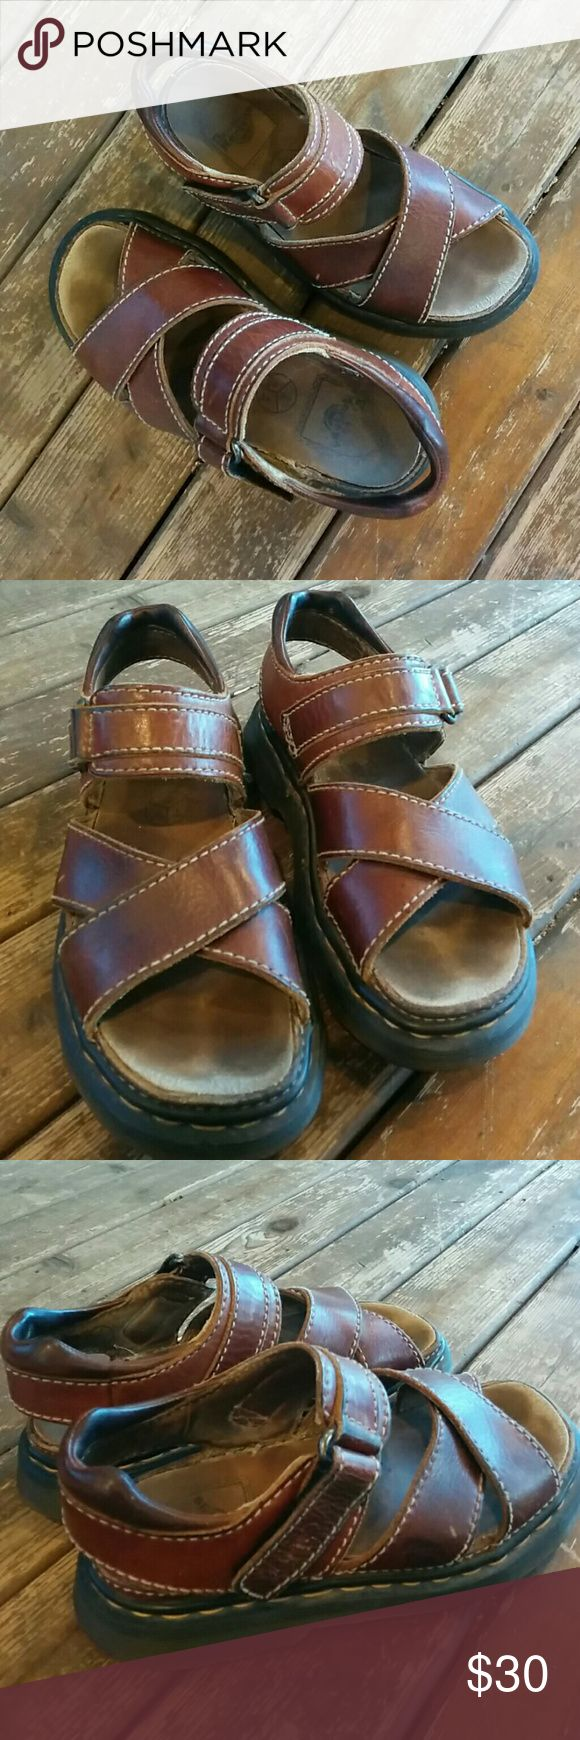 Dr Martens {VINTAGE} sandals Sandals Dr. Martens Shoes Sandals